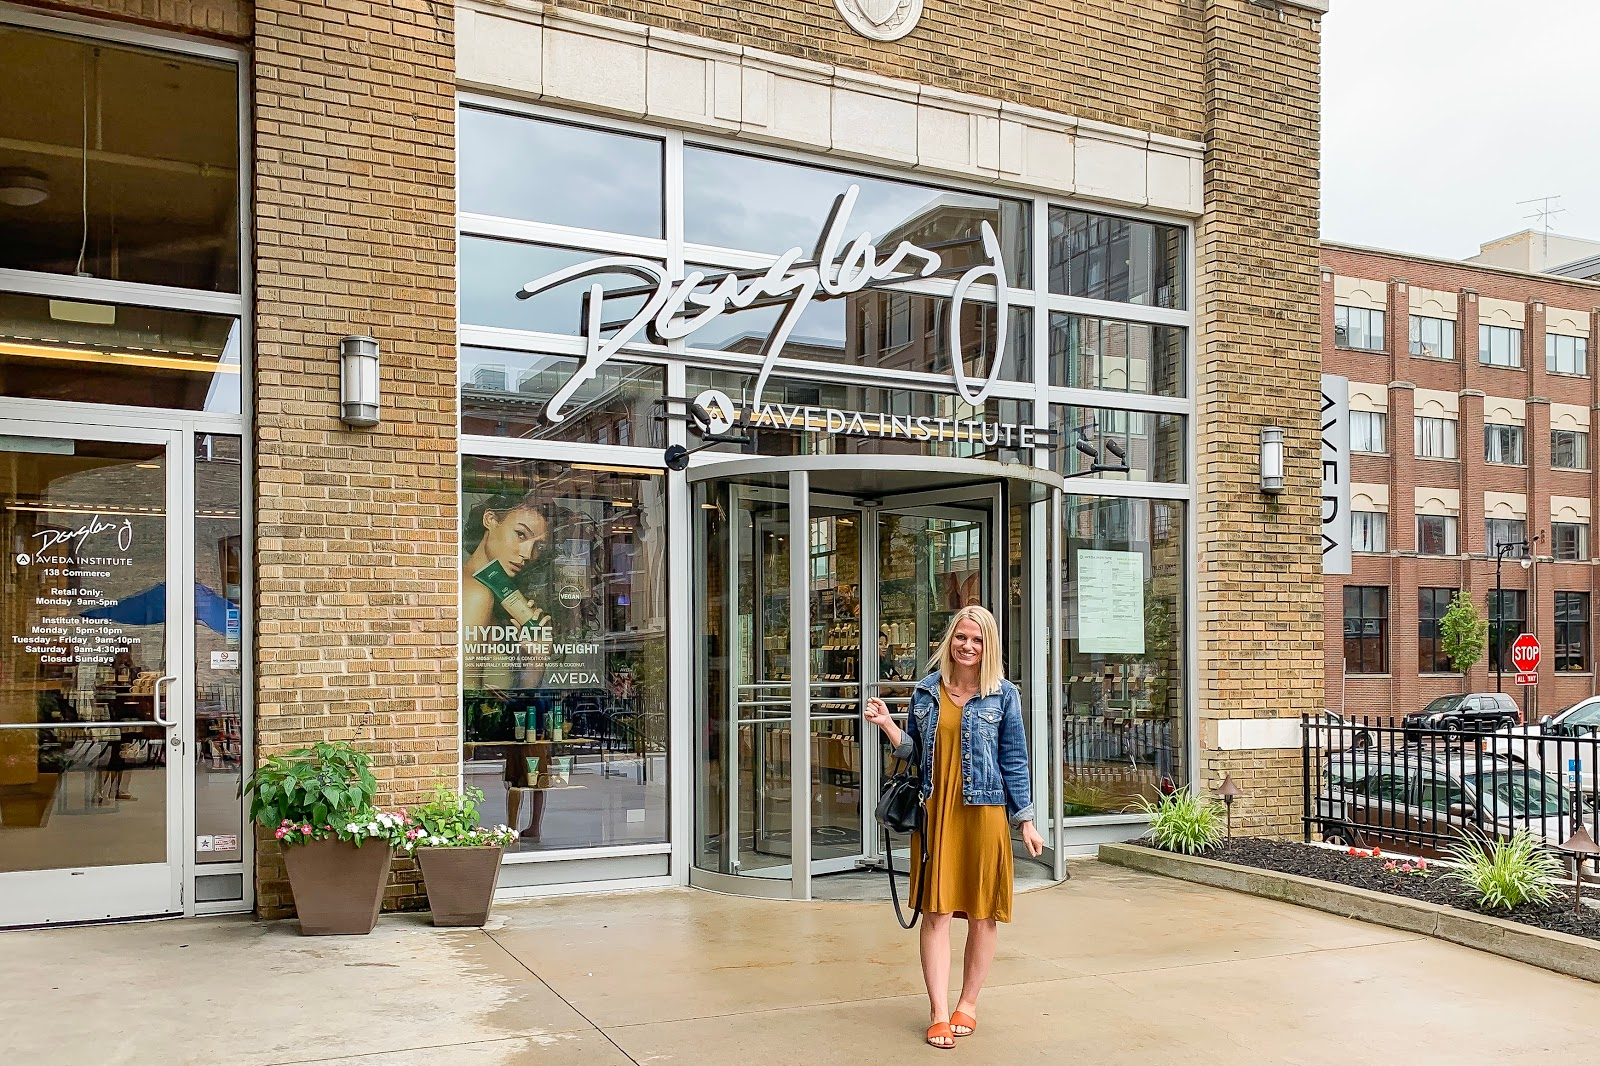 A Day at the Salon with Douglas J. Aveda Institute   Thrifty Wife ...